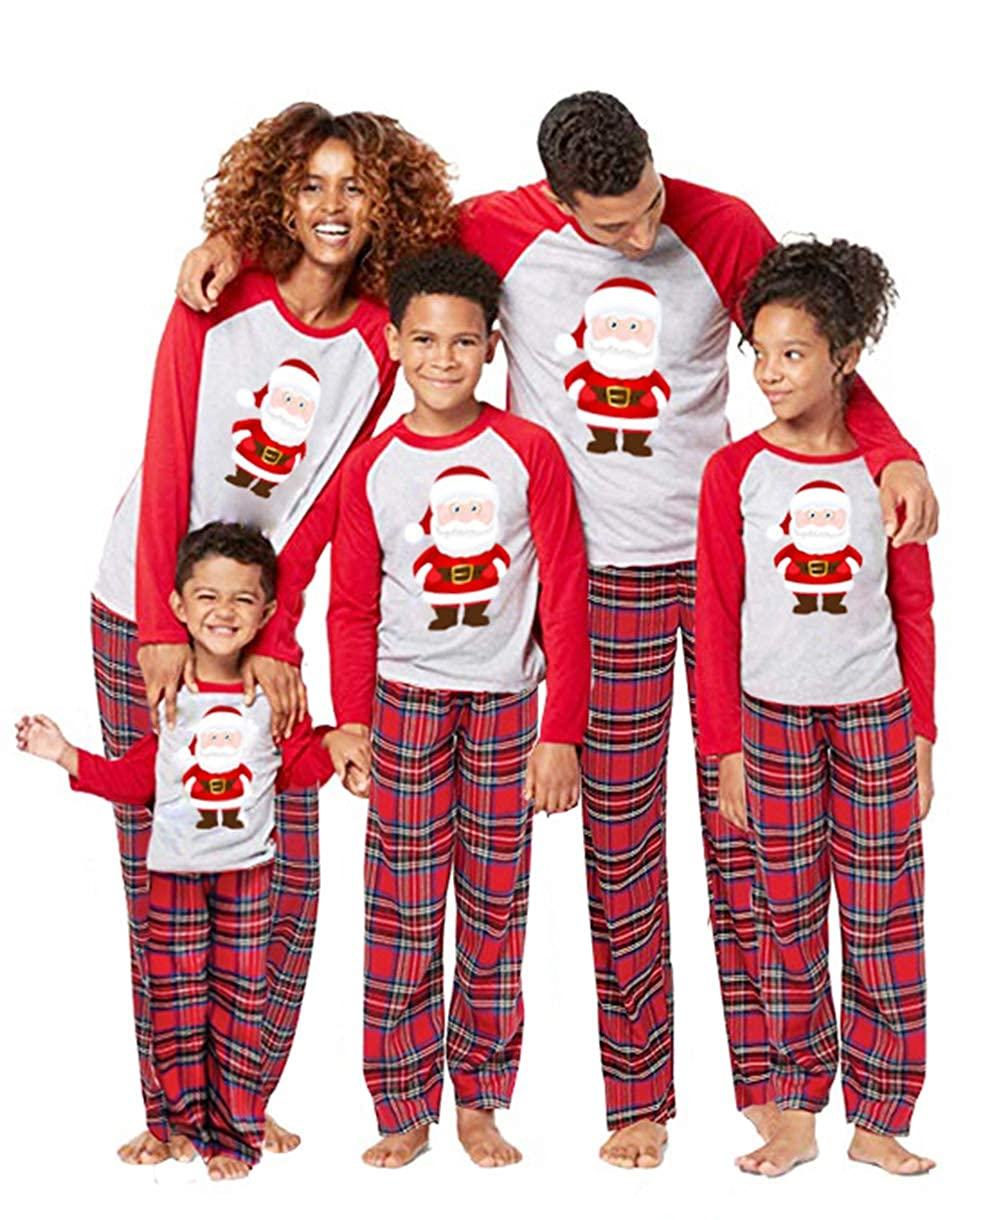 Vawal 2Pcs Family Matching Christmas Santa Claus Outfits Long Sleeve T-Shirt Romper+Plaid Long Pants Pajamas